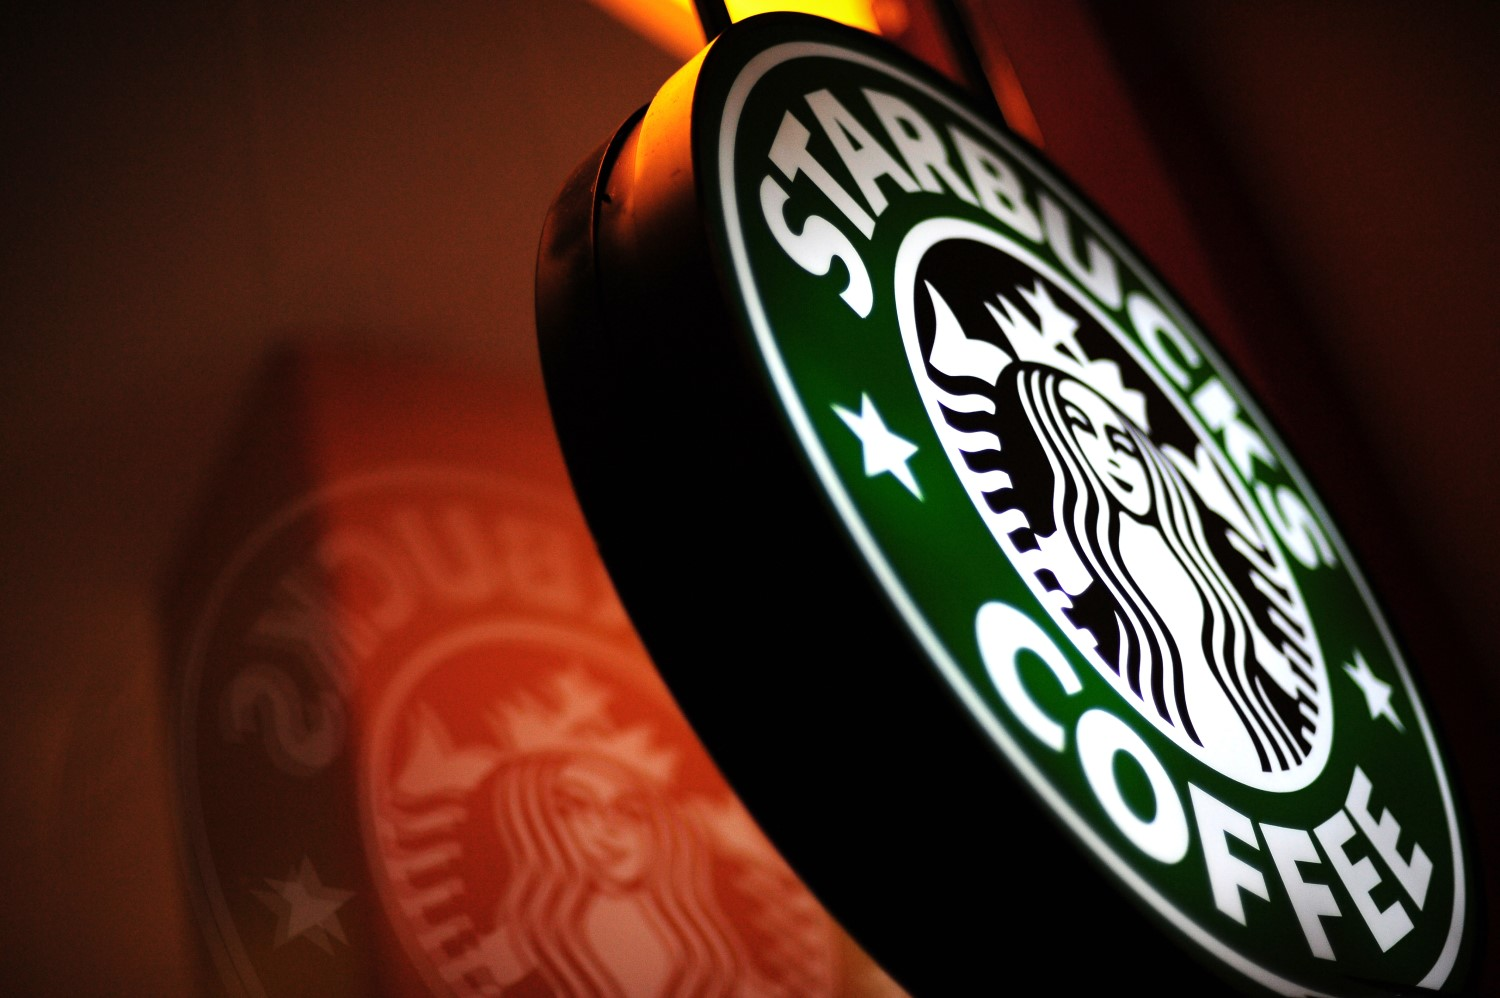 Starbucks to Track Coffee Using Microsoft's Blockchain Service